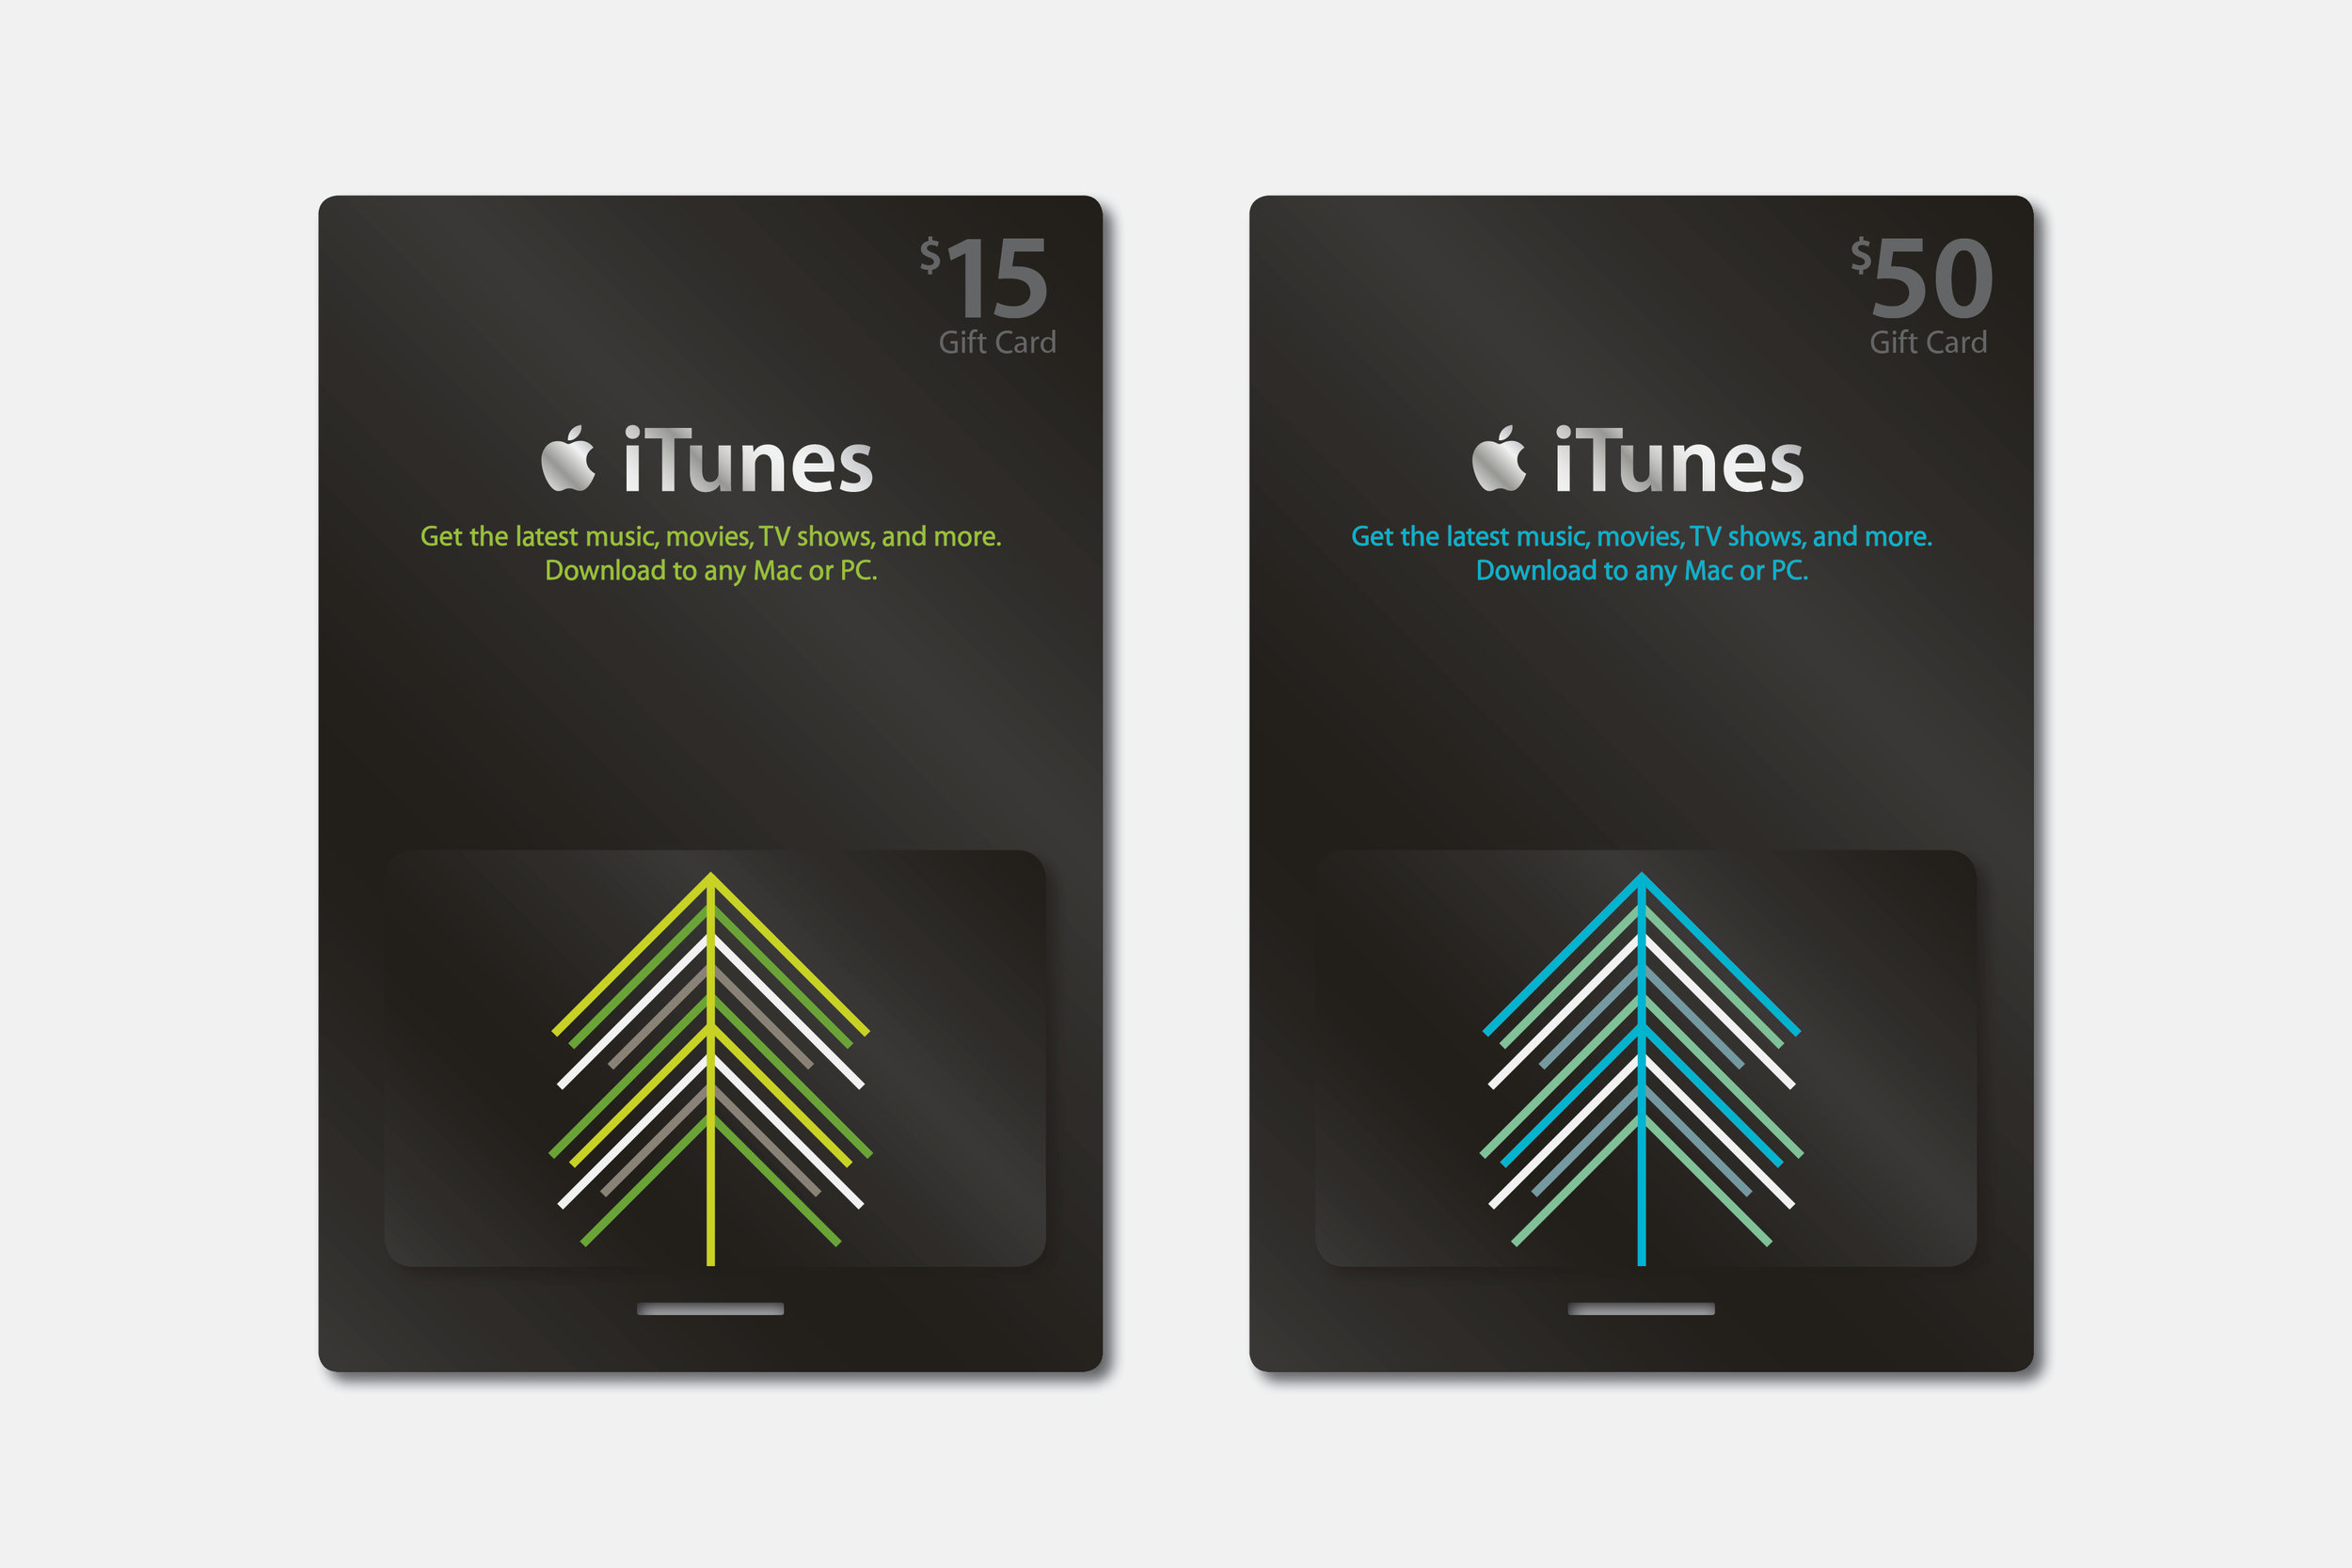 iTunes outtakes87.jpg